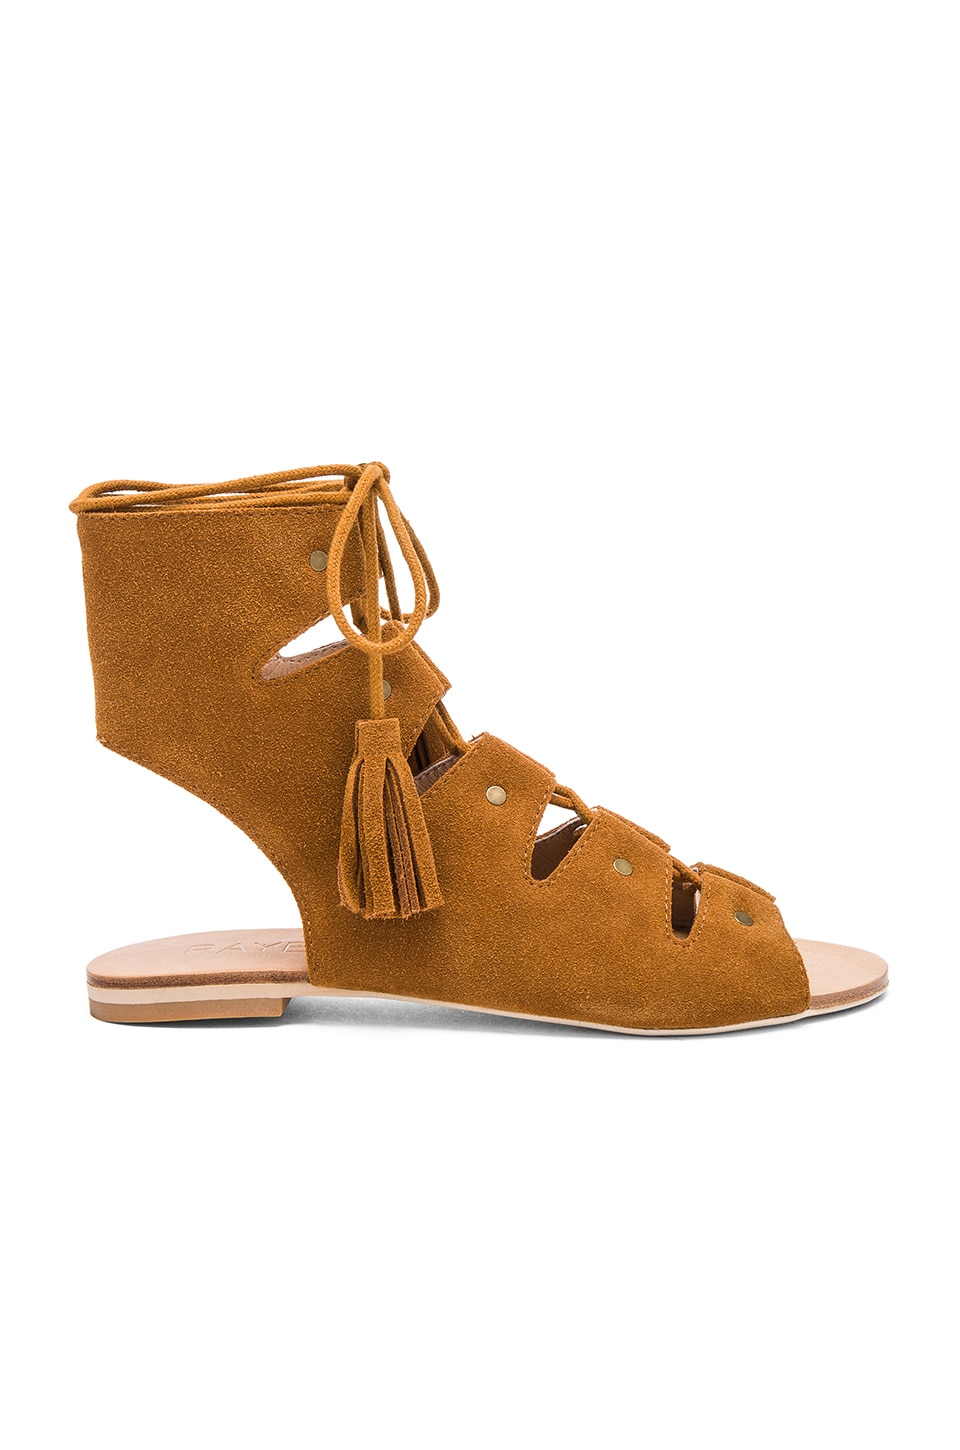 RAYE Sydney Sandal in Whiskey